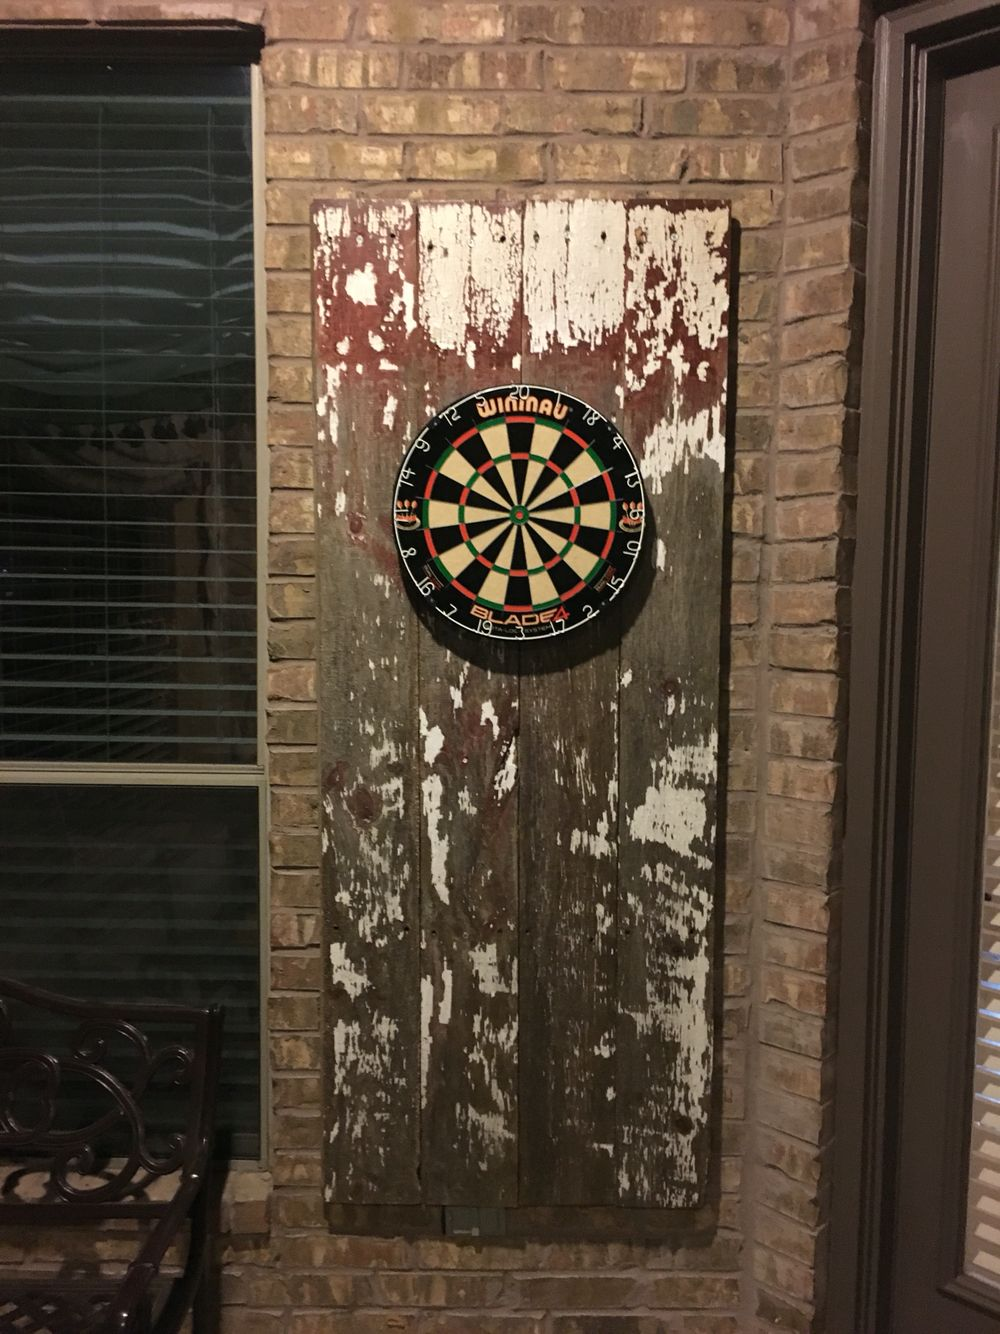 Just finished putting together my new dart board with reclaimed antique  rustic siding from a barn - Just Finished Putting Together My New Dart Board With Reclaimed